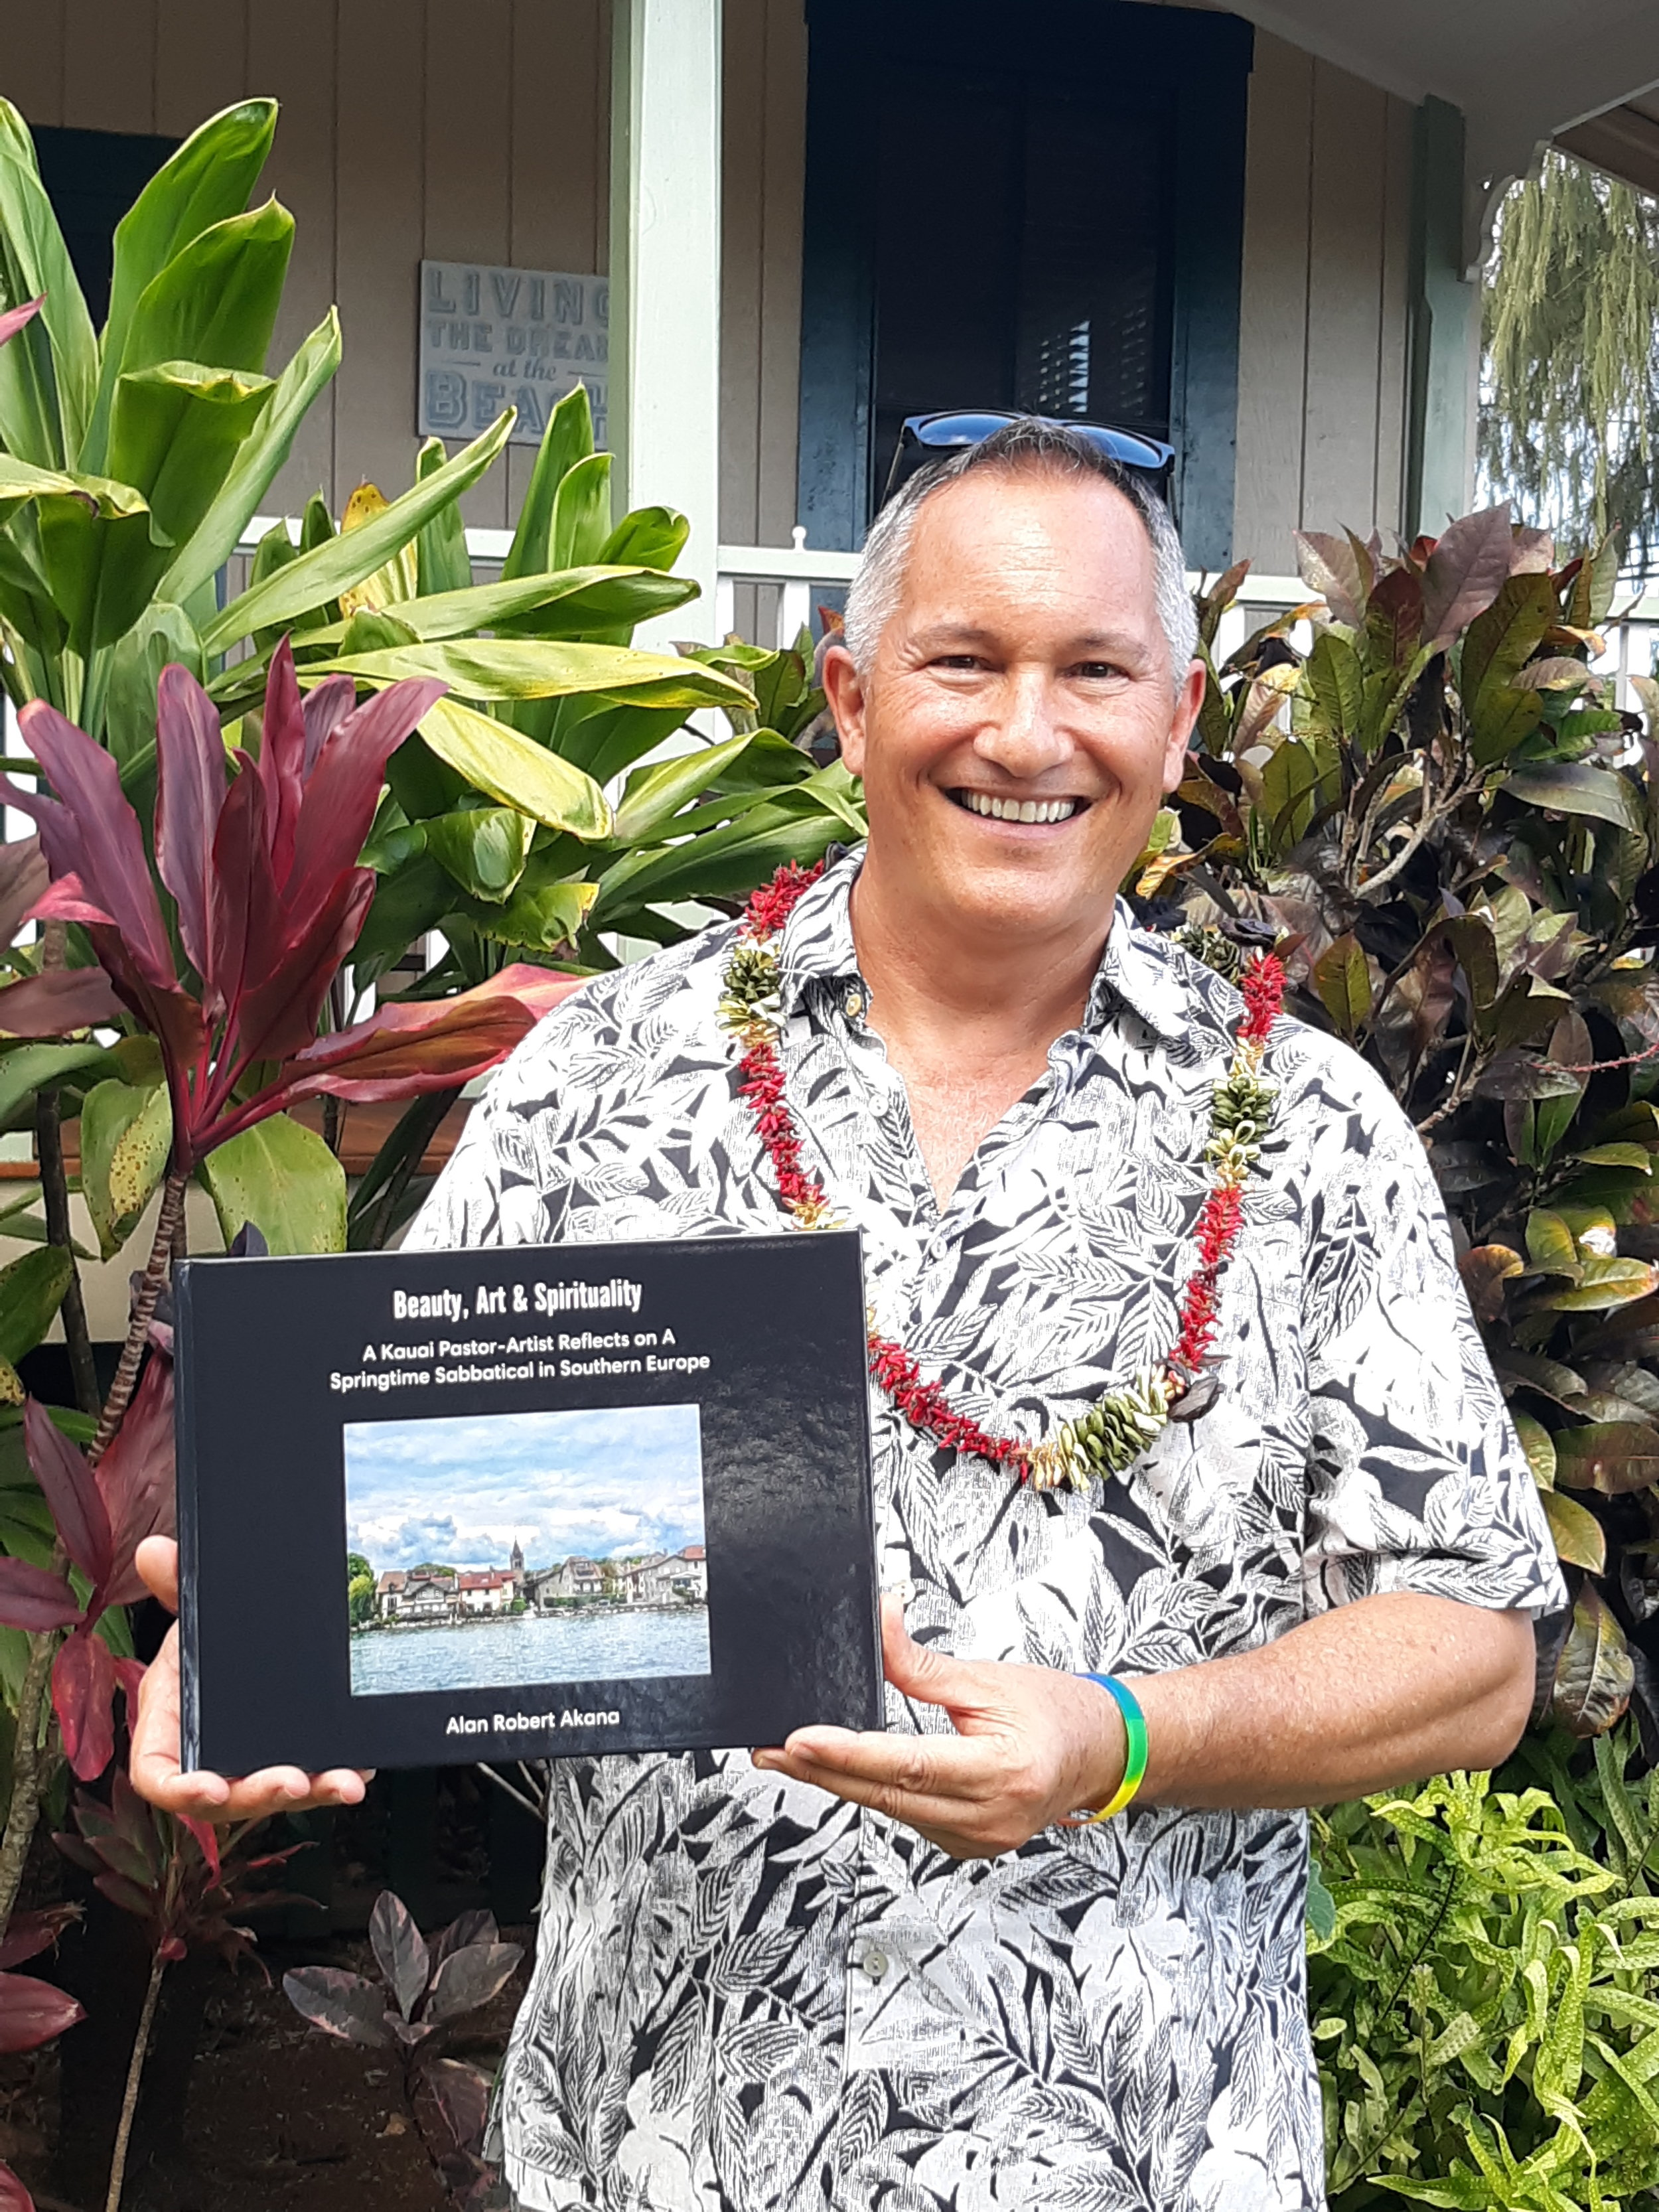 Alan displays a copy of his latest book amidst the healthy red and green tropical foliage that fronts the large, welcoming lanai of the charming 1928 Smith Memorial Parsonage. The historical building and grounds are owned and maintained by Koloa Union Church and serve as the residence for the church's kahu (pastor).